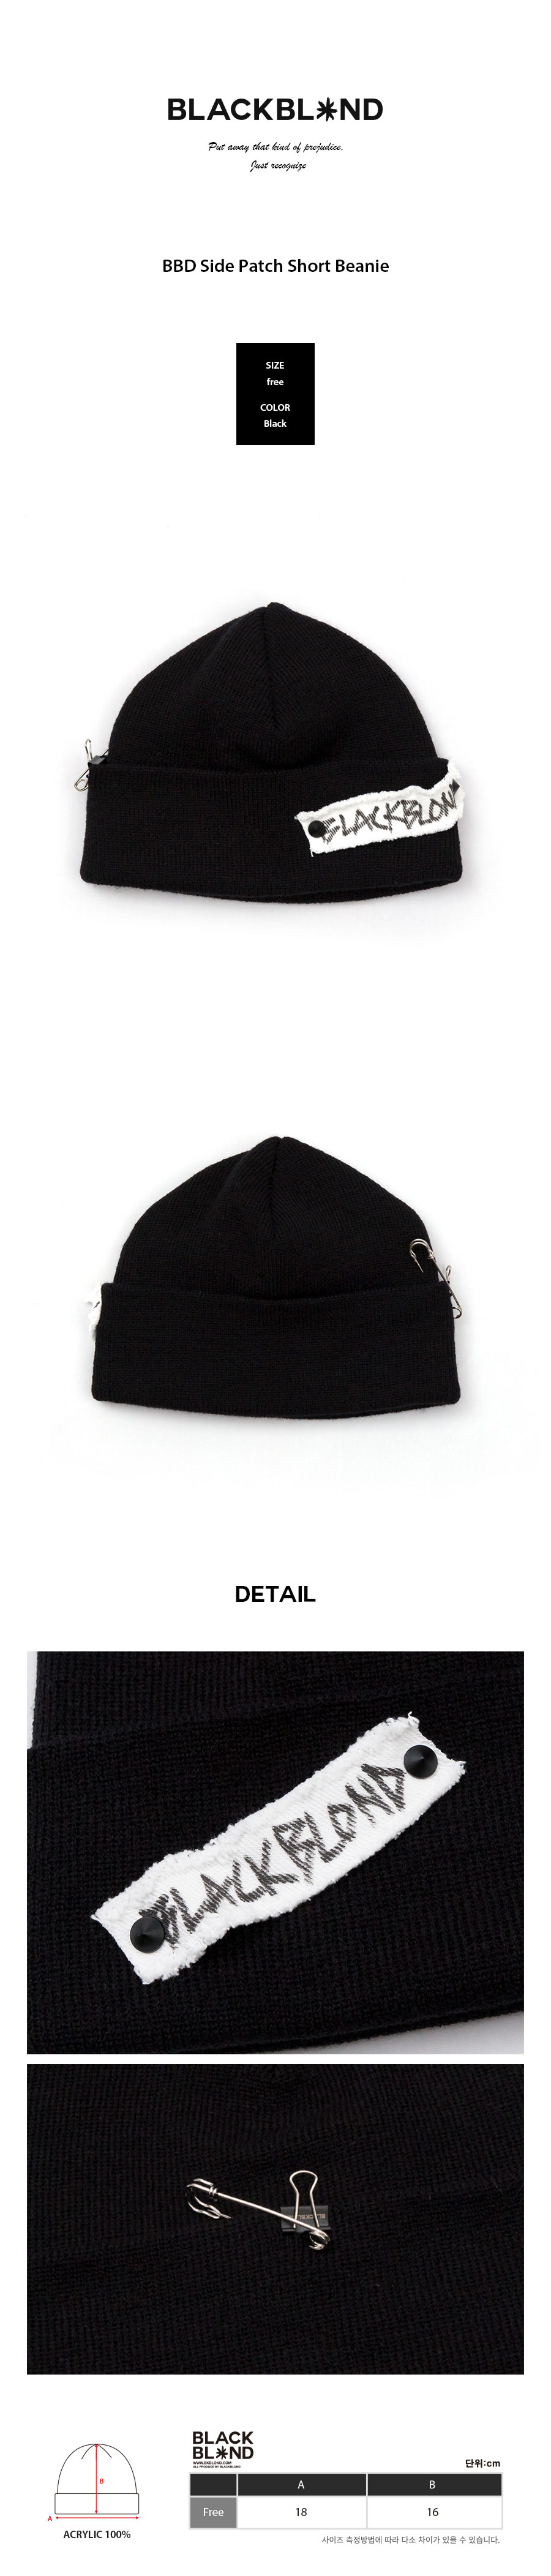 블랙블론드 BLACKBLOND - BBD Side Patch Short Beanie (Black)